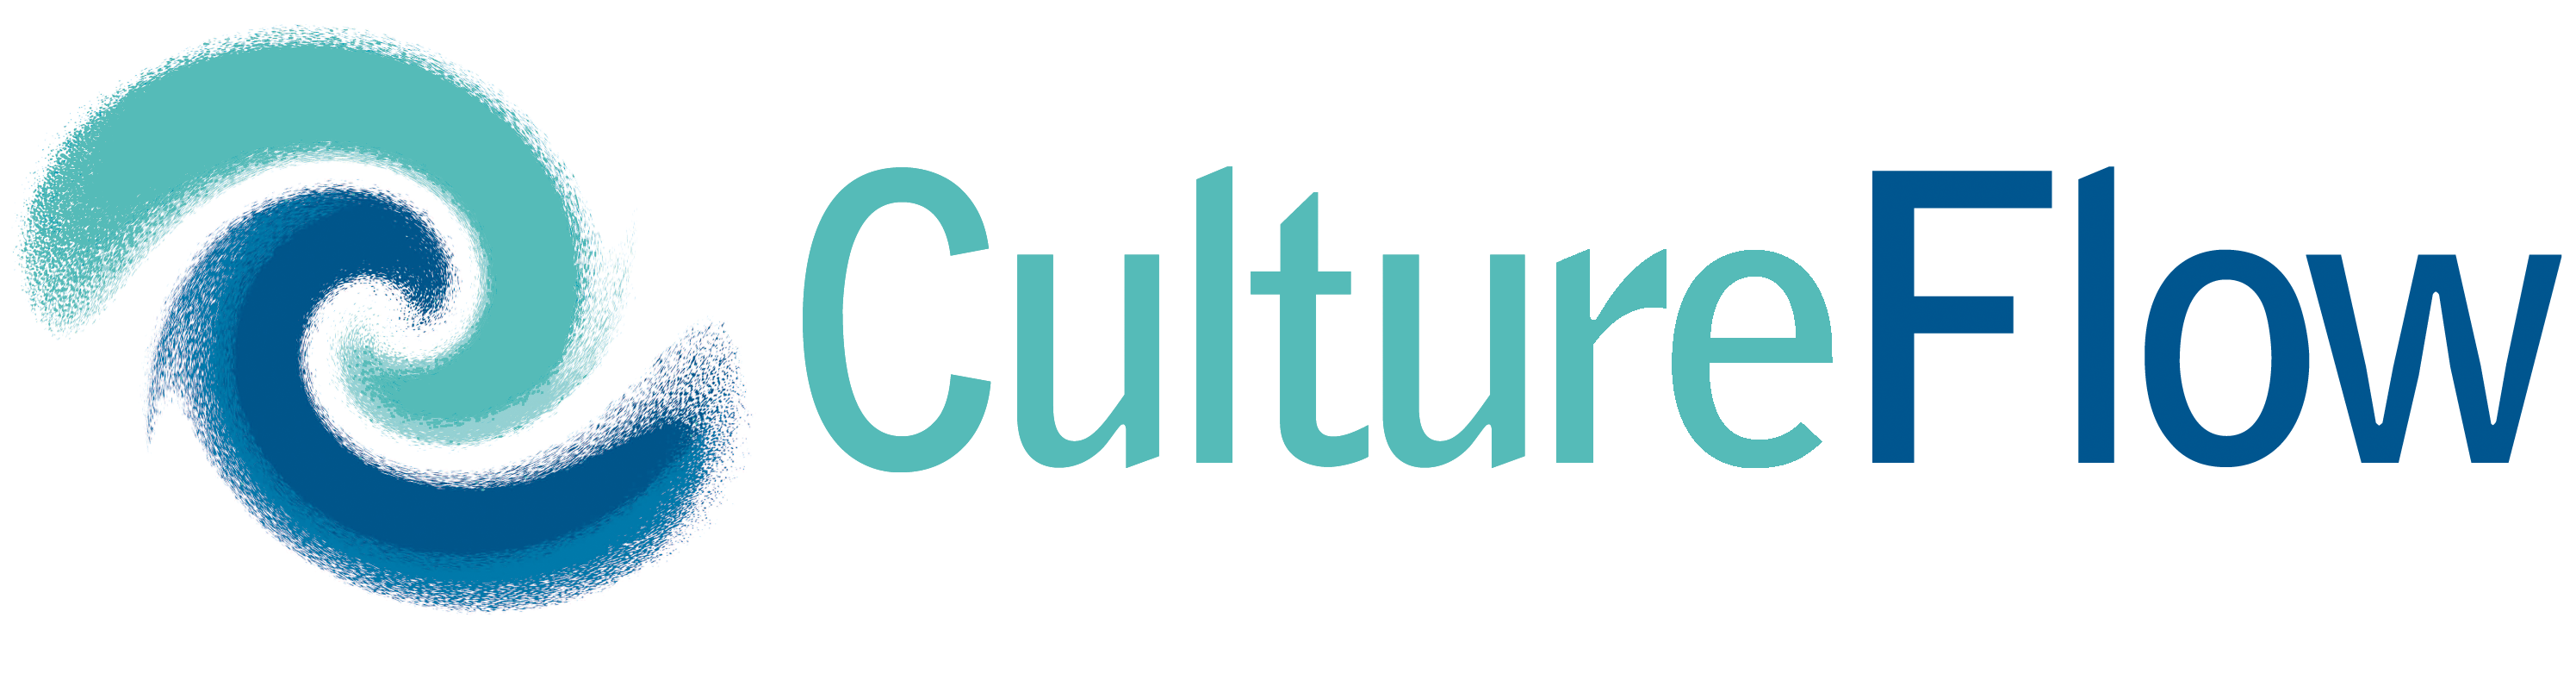 Corporate Design CultureFlow Logo